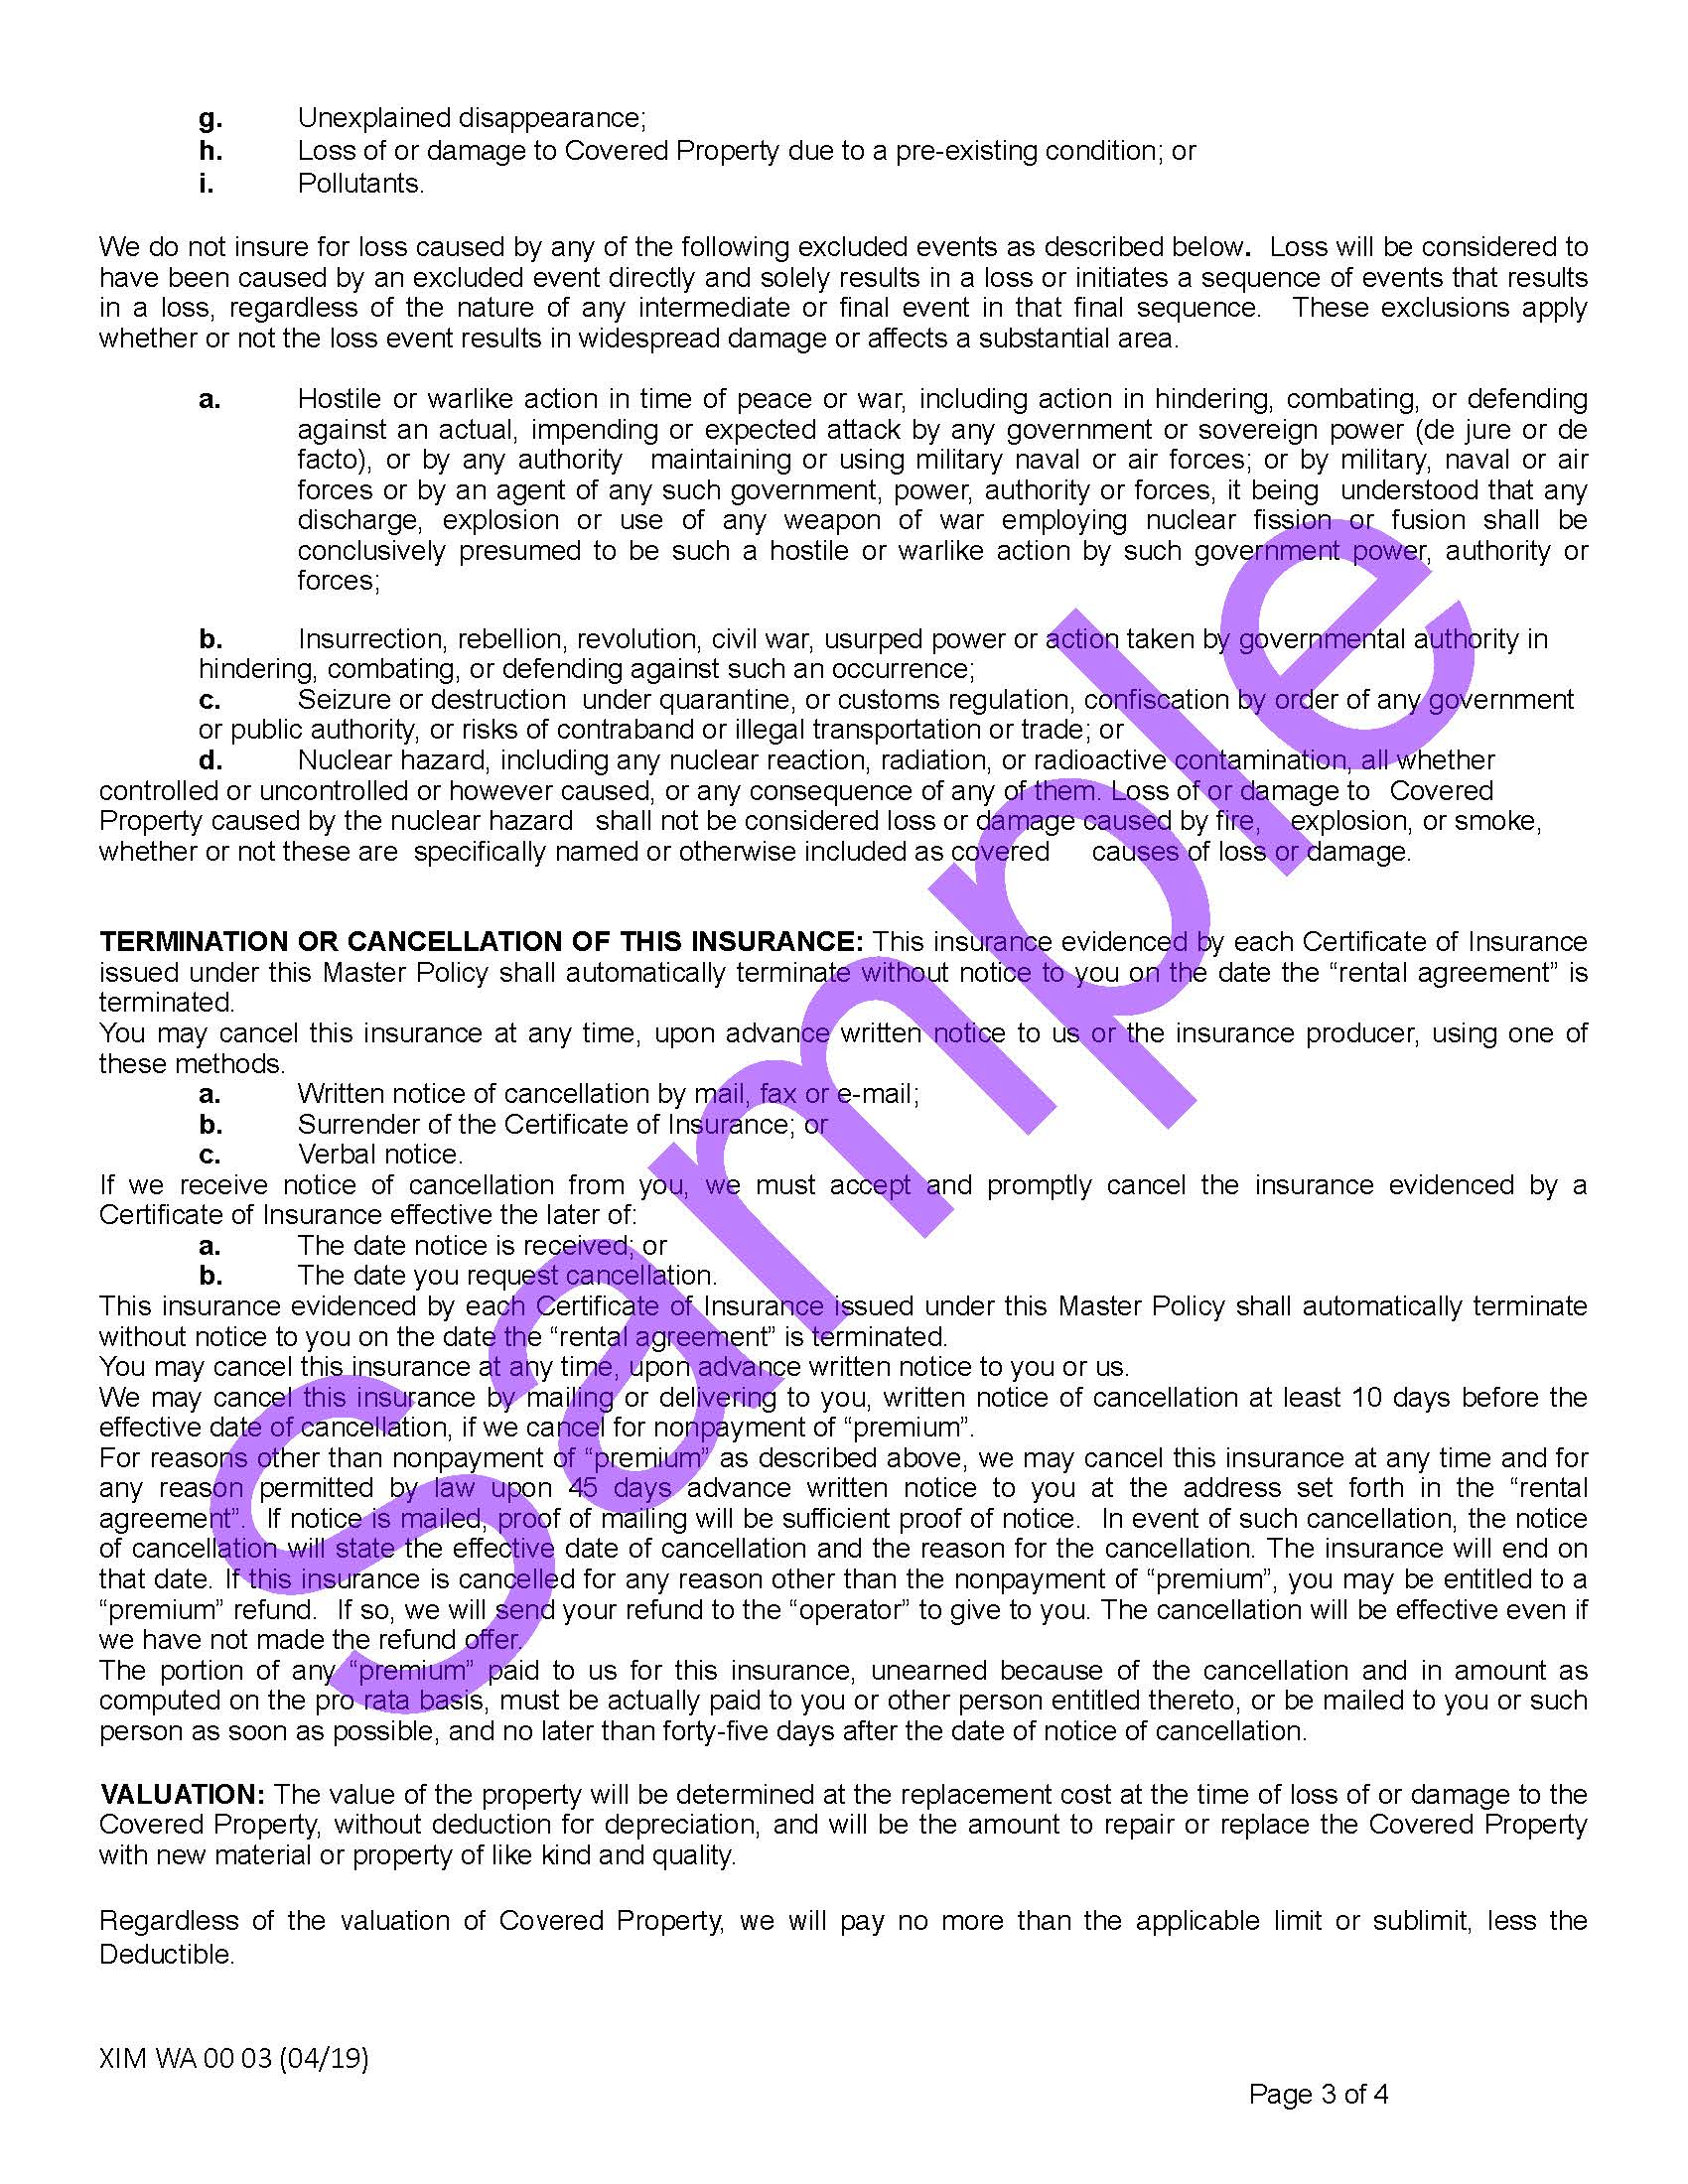 XIM WA 00 03 04 19 Washington Certificate of InsuranceSample_Page_3.jpg